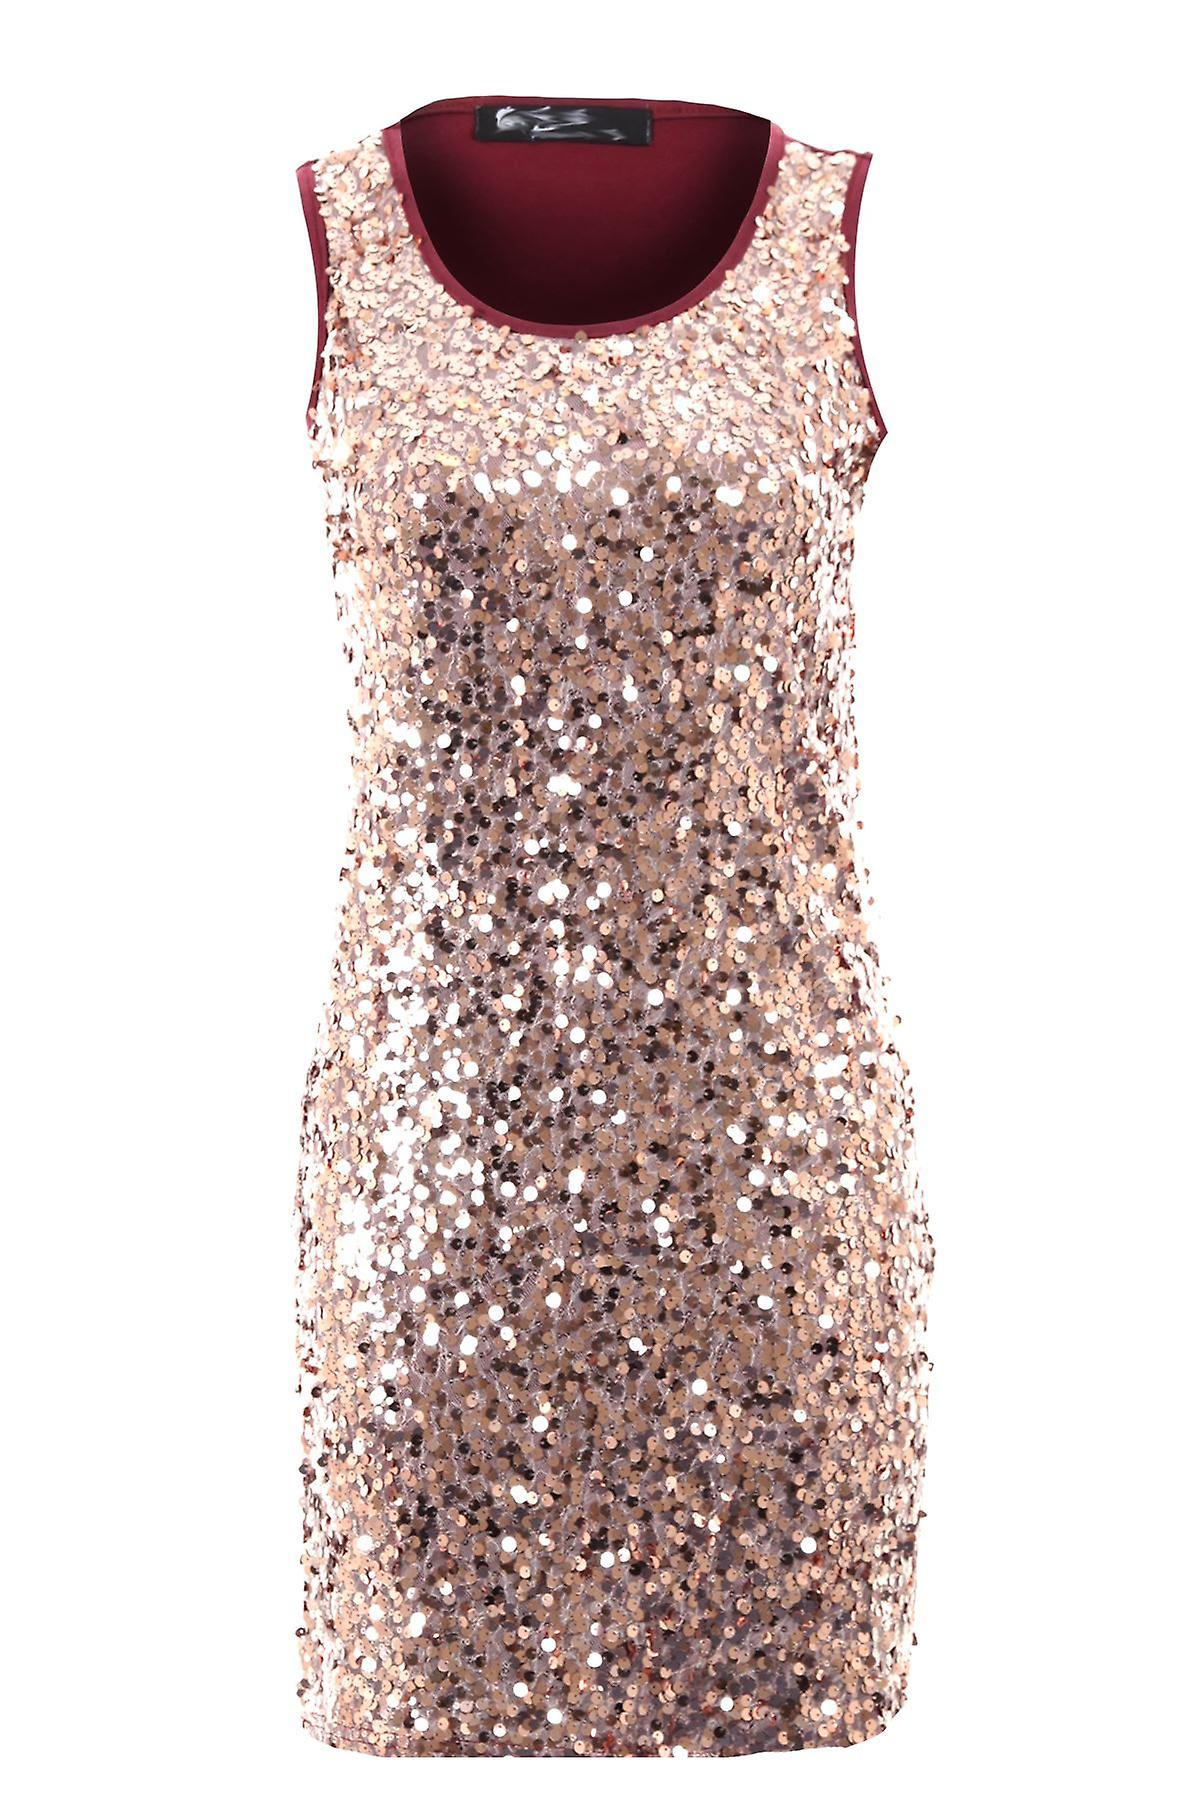 Ladies Round Sequin Shiny Wine Black Beige Plain Back Short Women's Party Dress